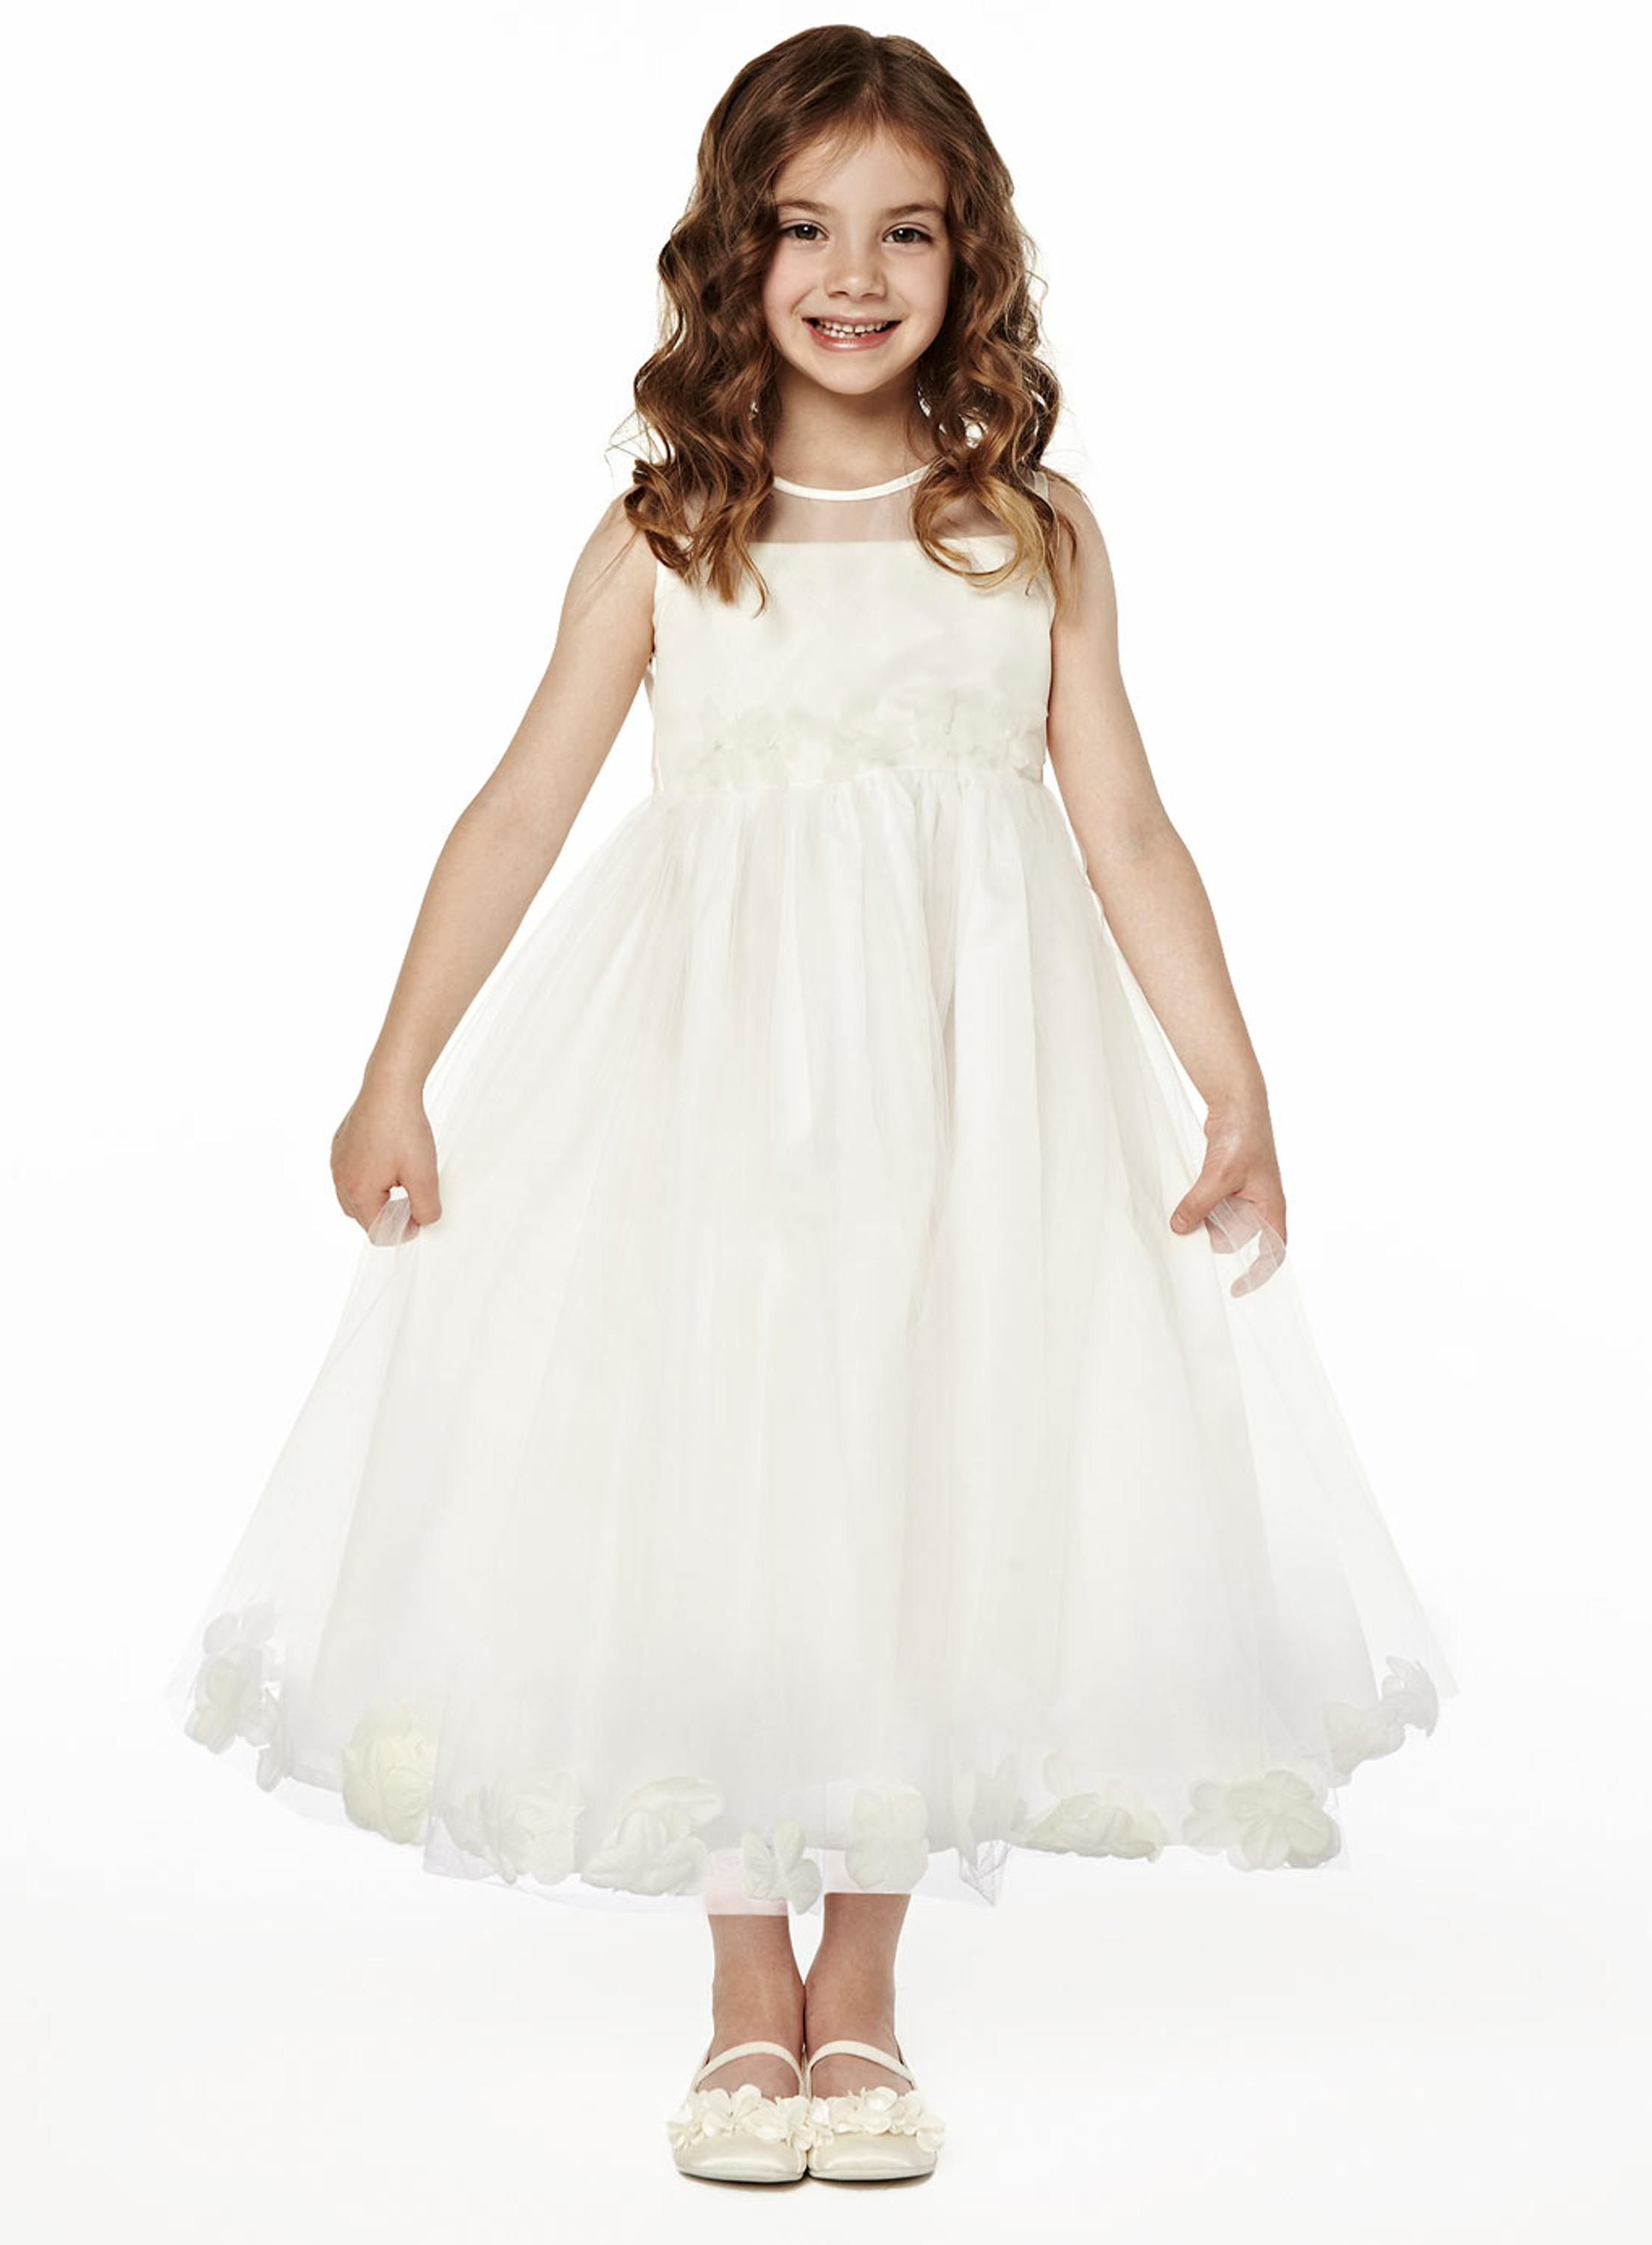 A-Line Flower Girl Dresses For Wedding Gown Ankle-Length Mother Daughter Dresses Tulle Holy Communion Dresses With Hade Make Bow 2017 new flower girls dresses for wedding gown ball gown vintage communion dresses ankle length mother daughter dresses with bow